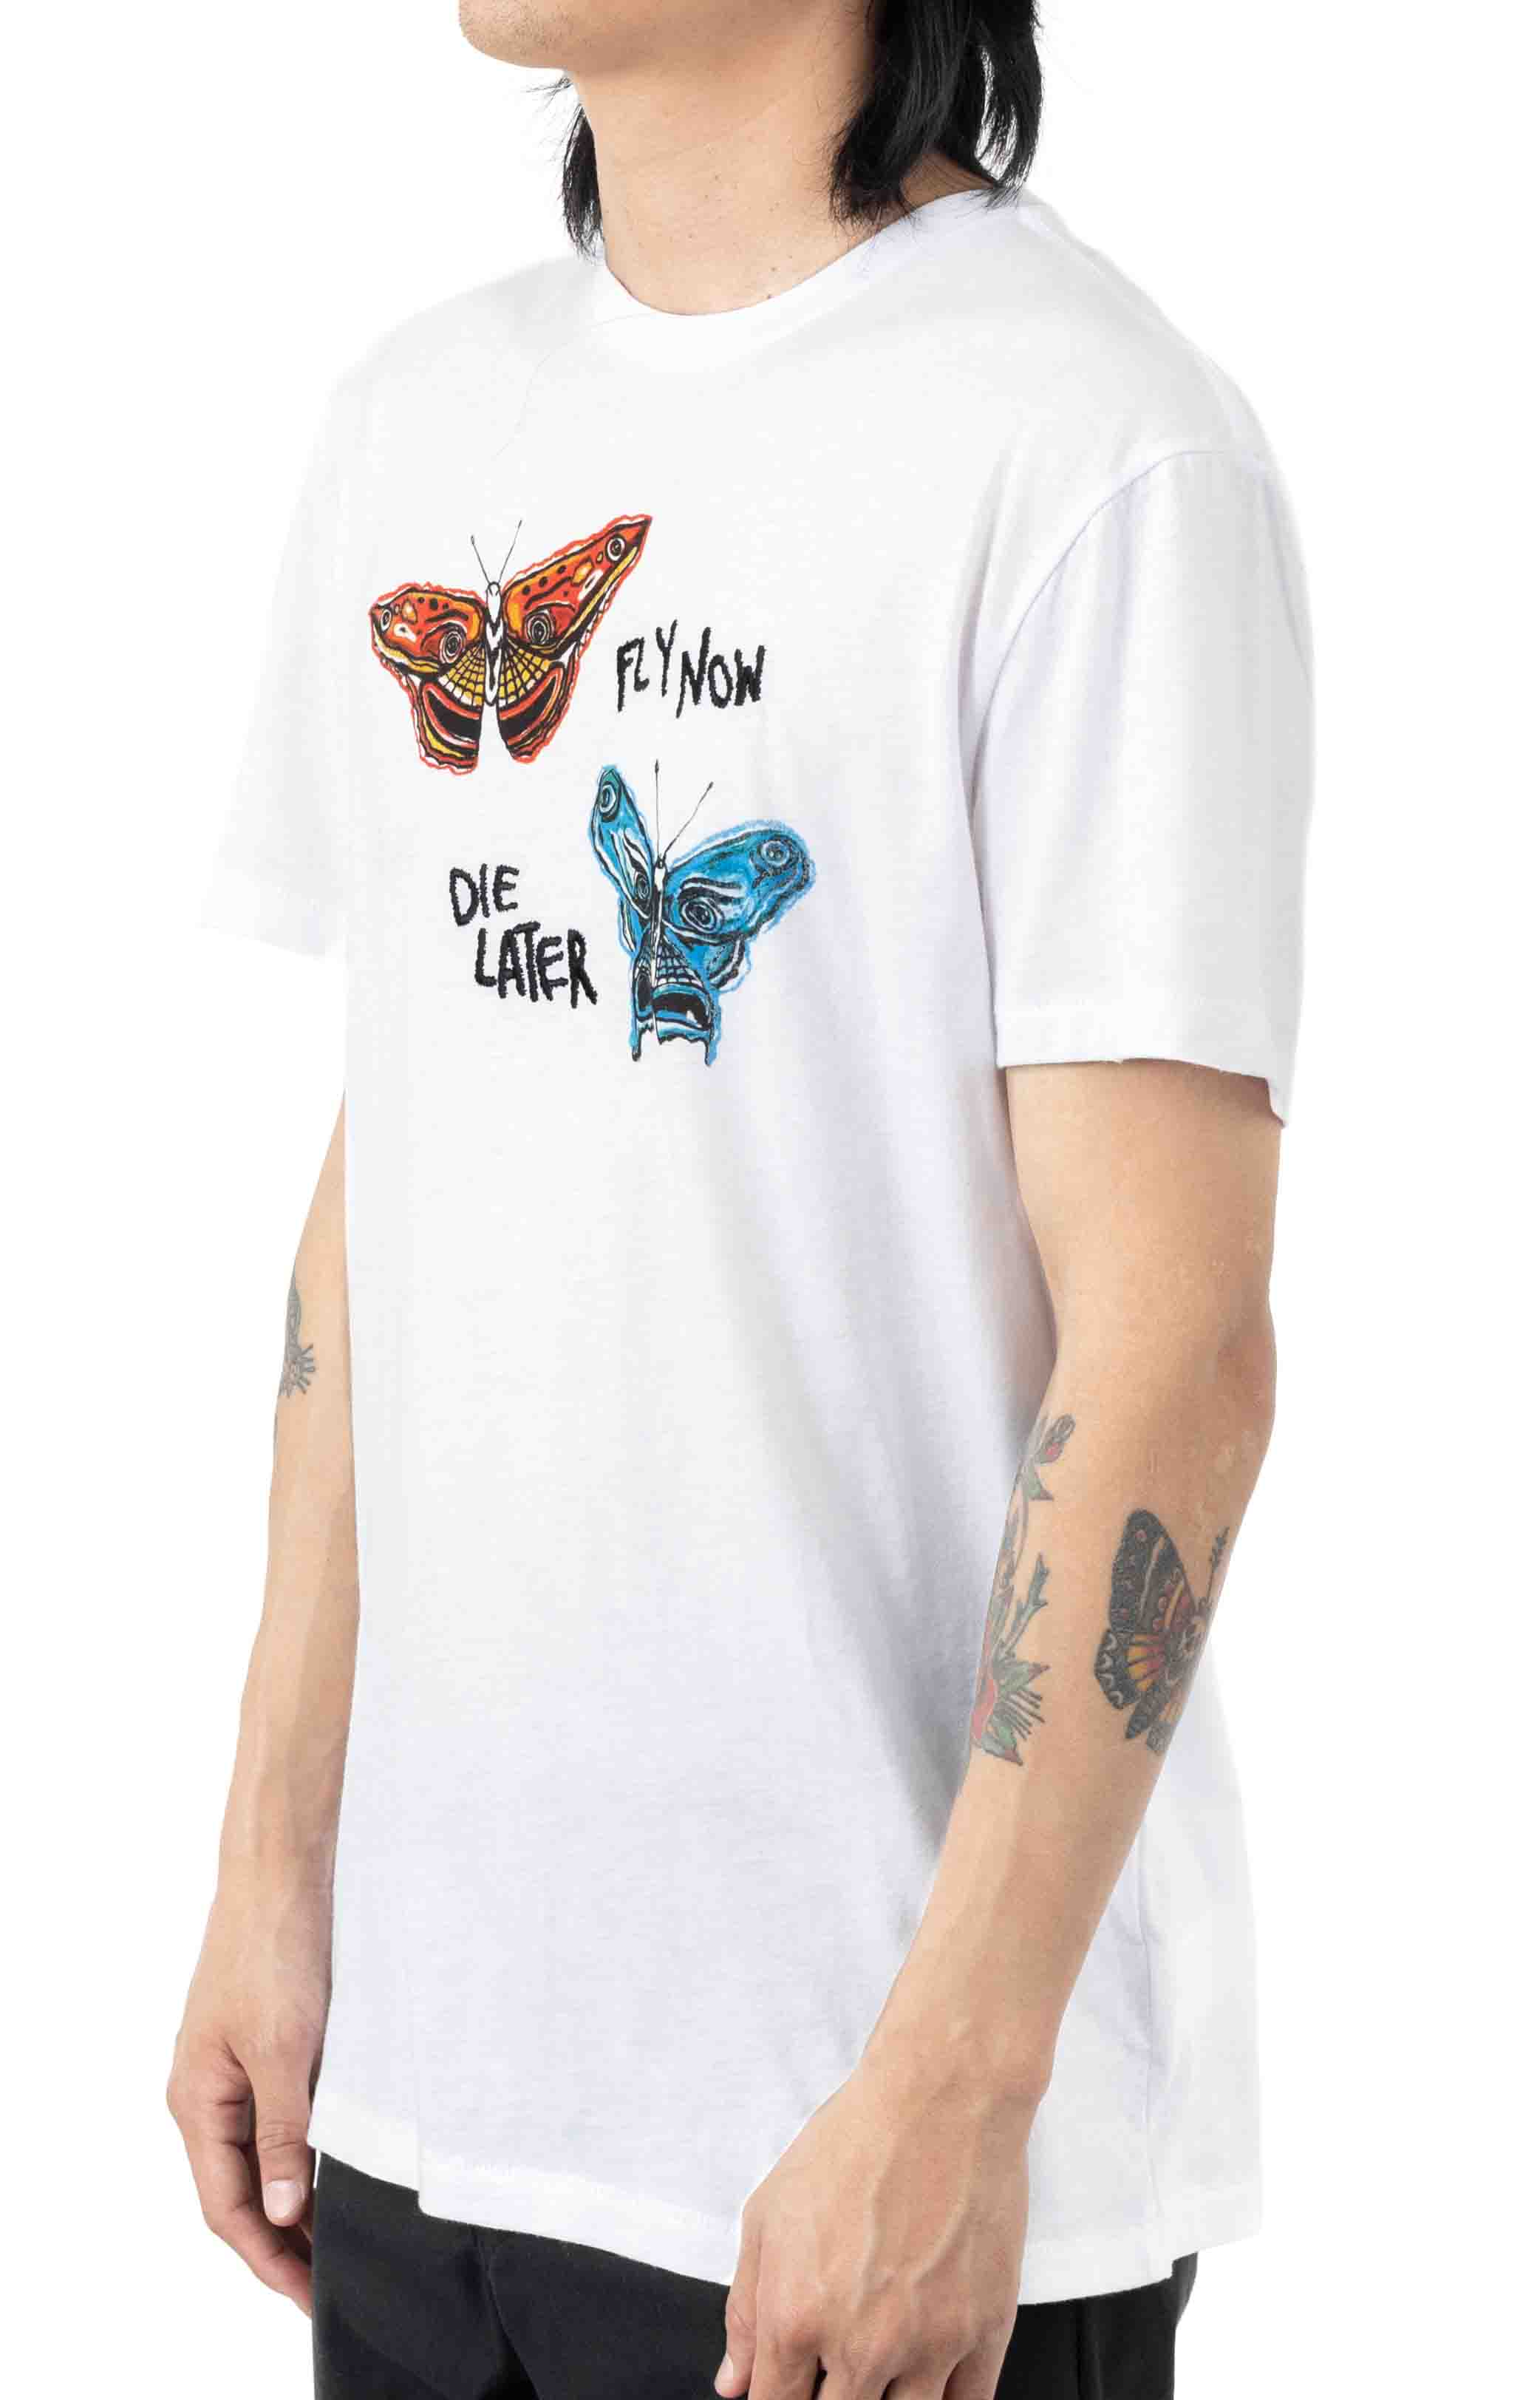 BB Fly Now Tailored  T-Shirt - White  2